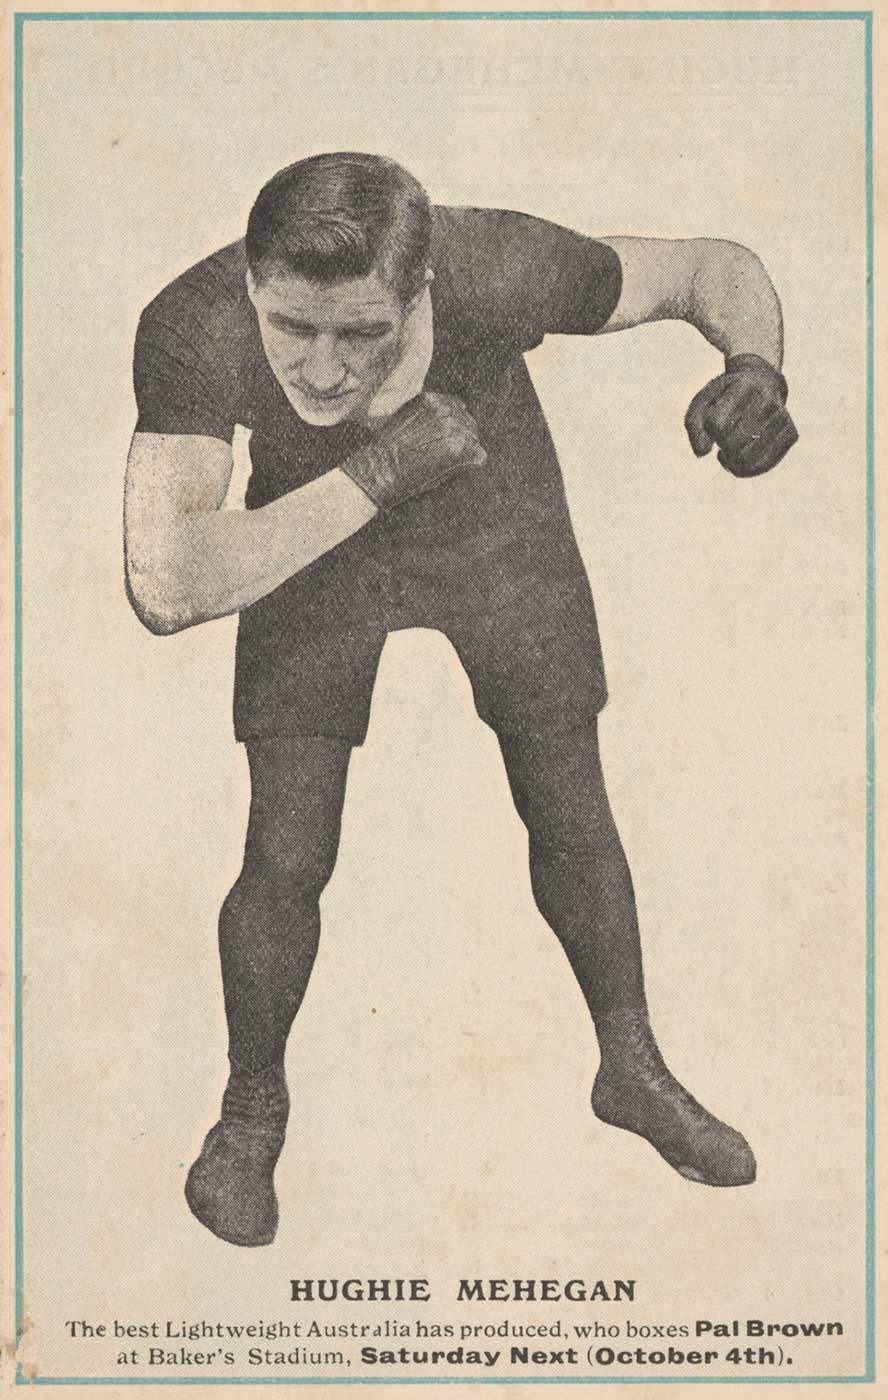 A postcard featuring a black and white photograph of a boxer in fighting pose. - click to view larger image